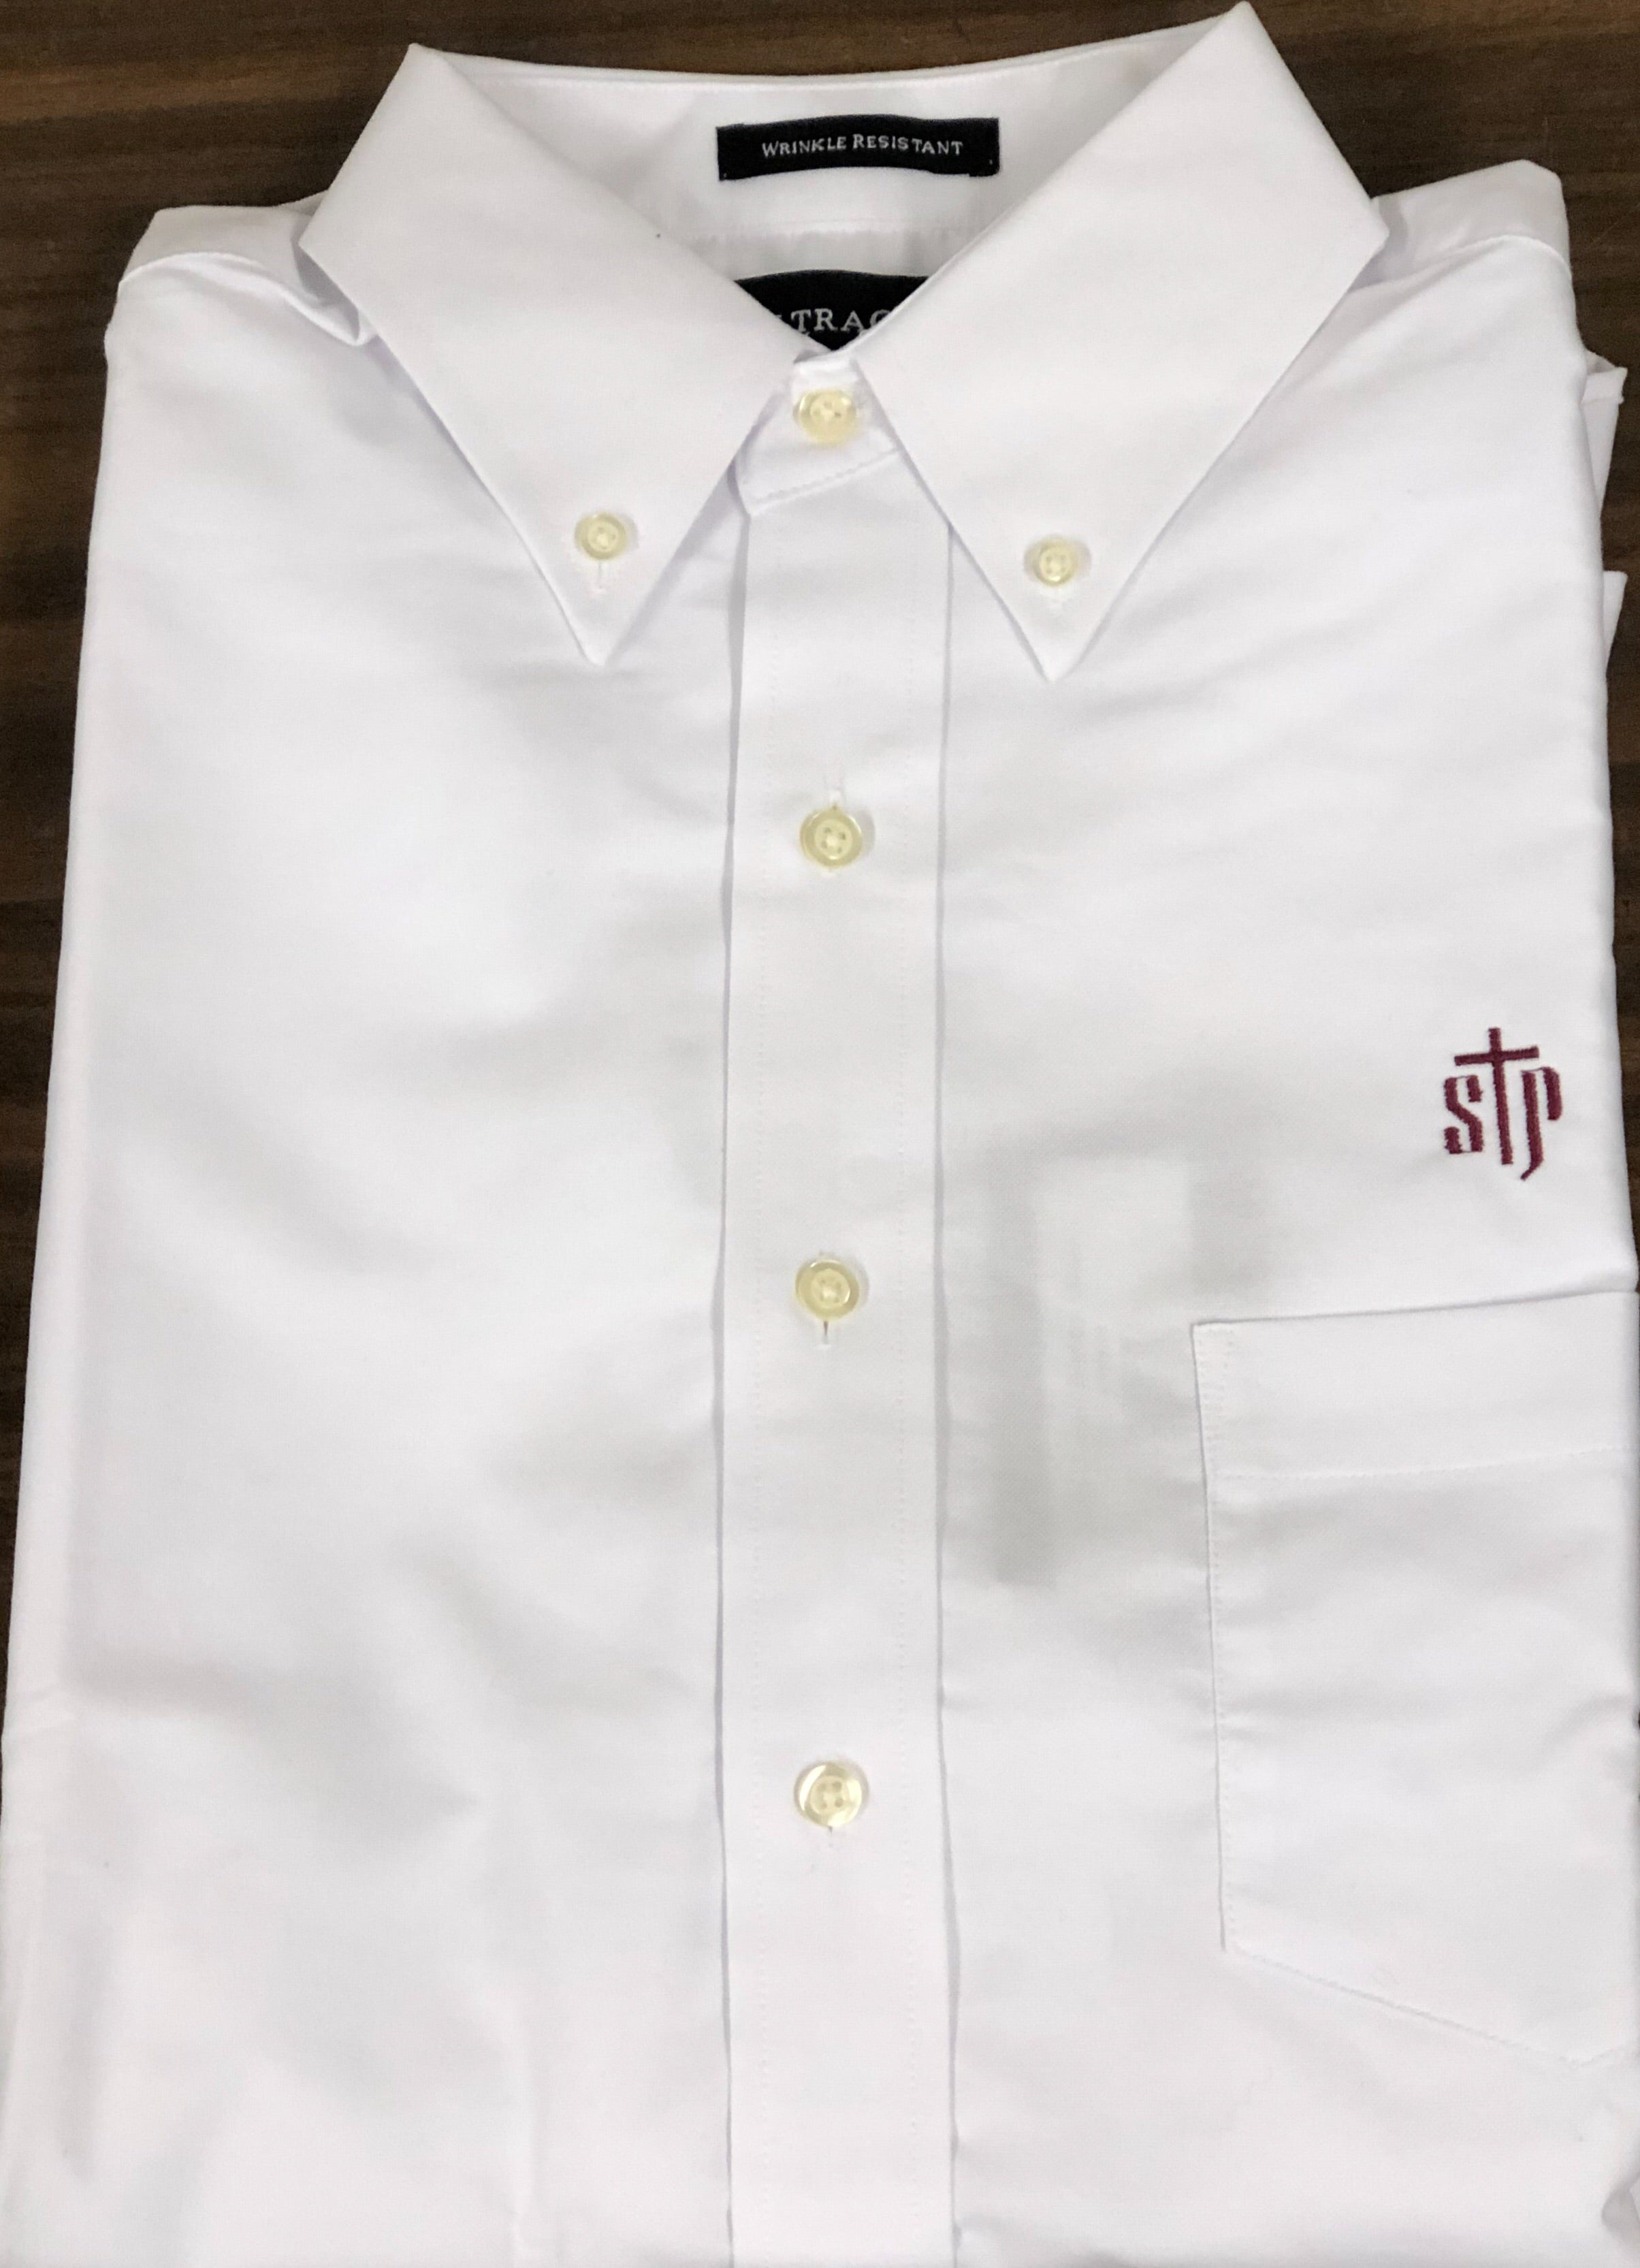 White Oxford Button Down